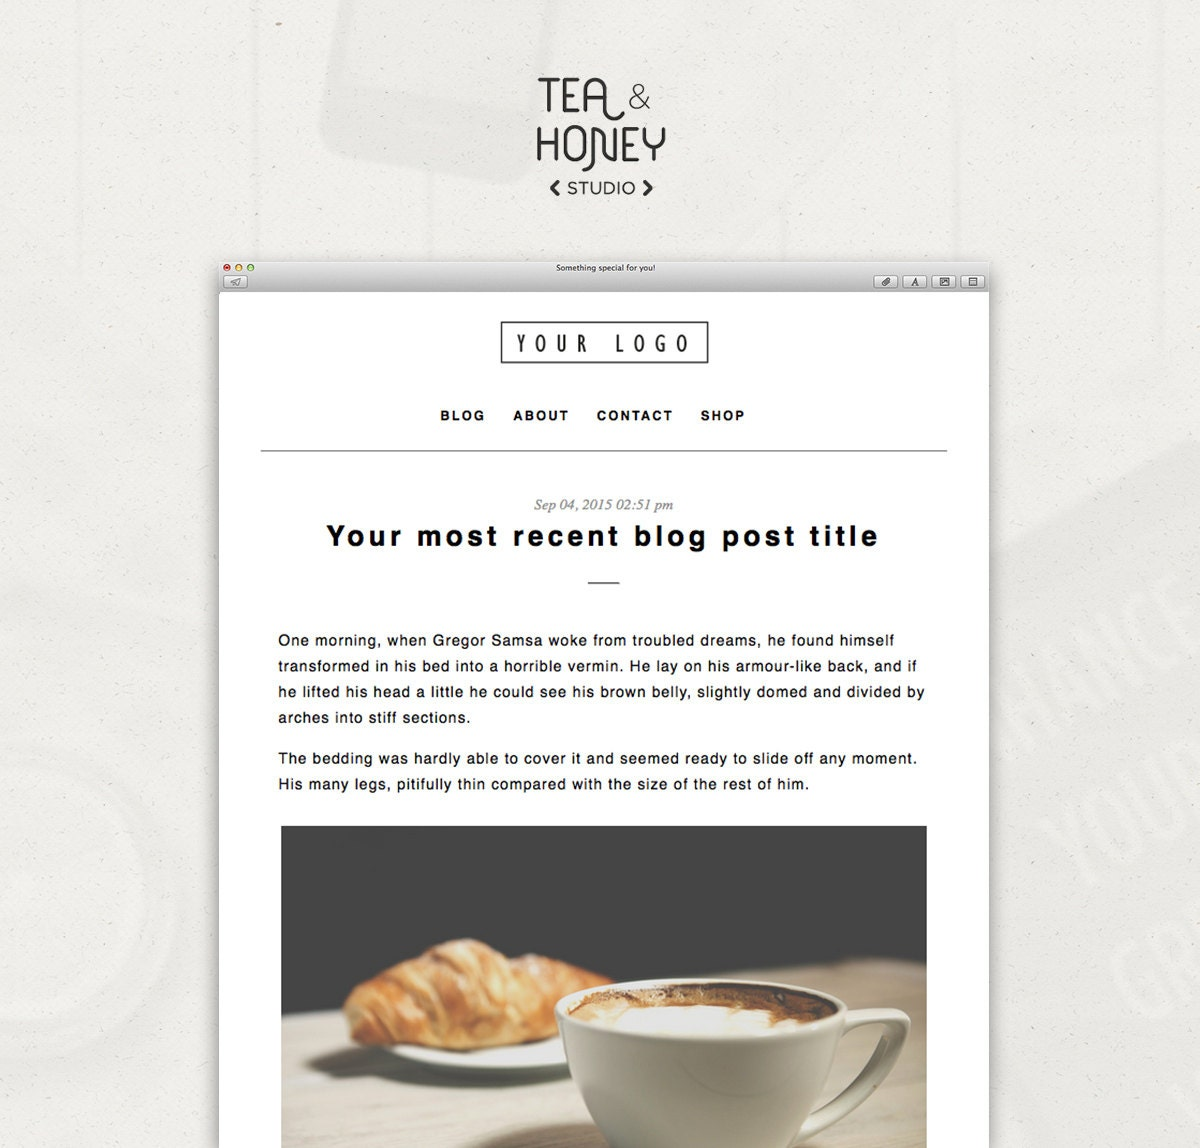 RSS Mailchimp Email Newsletter Template, Send your latest blog posts to  contact list, HTML Email Campaign, Customizable template, All setup